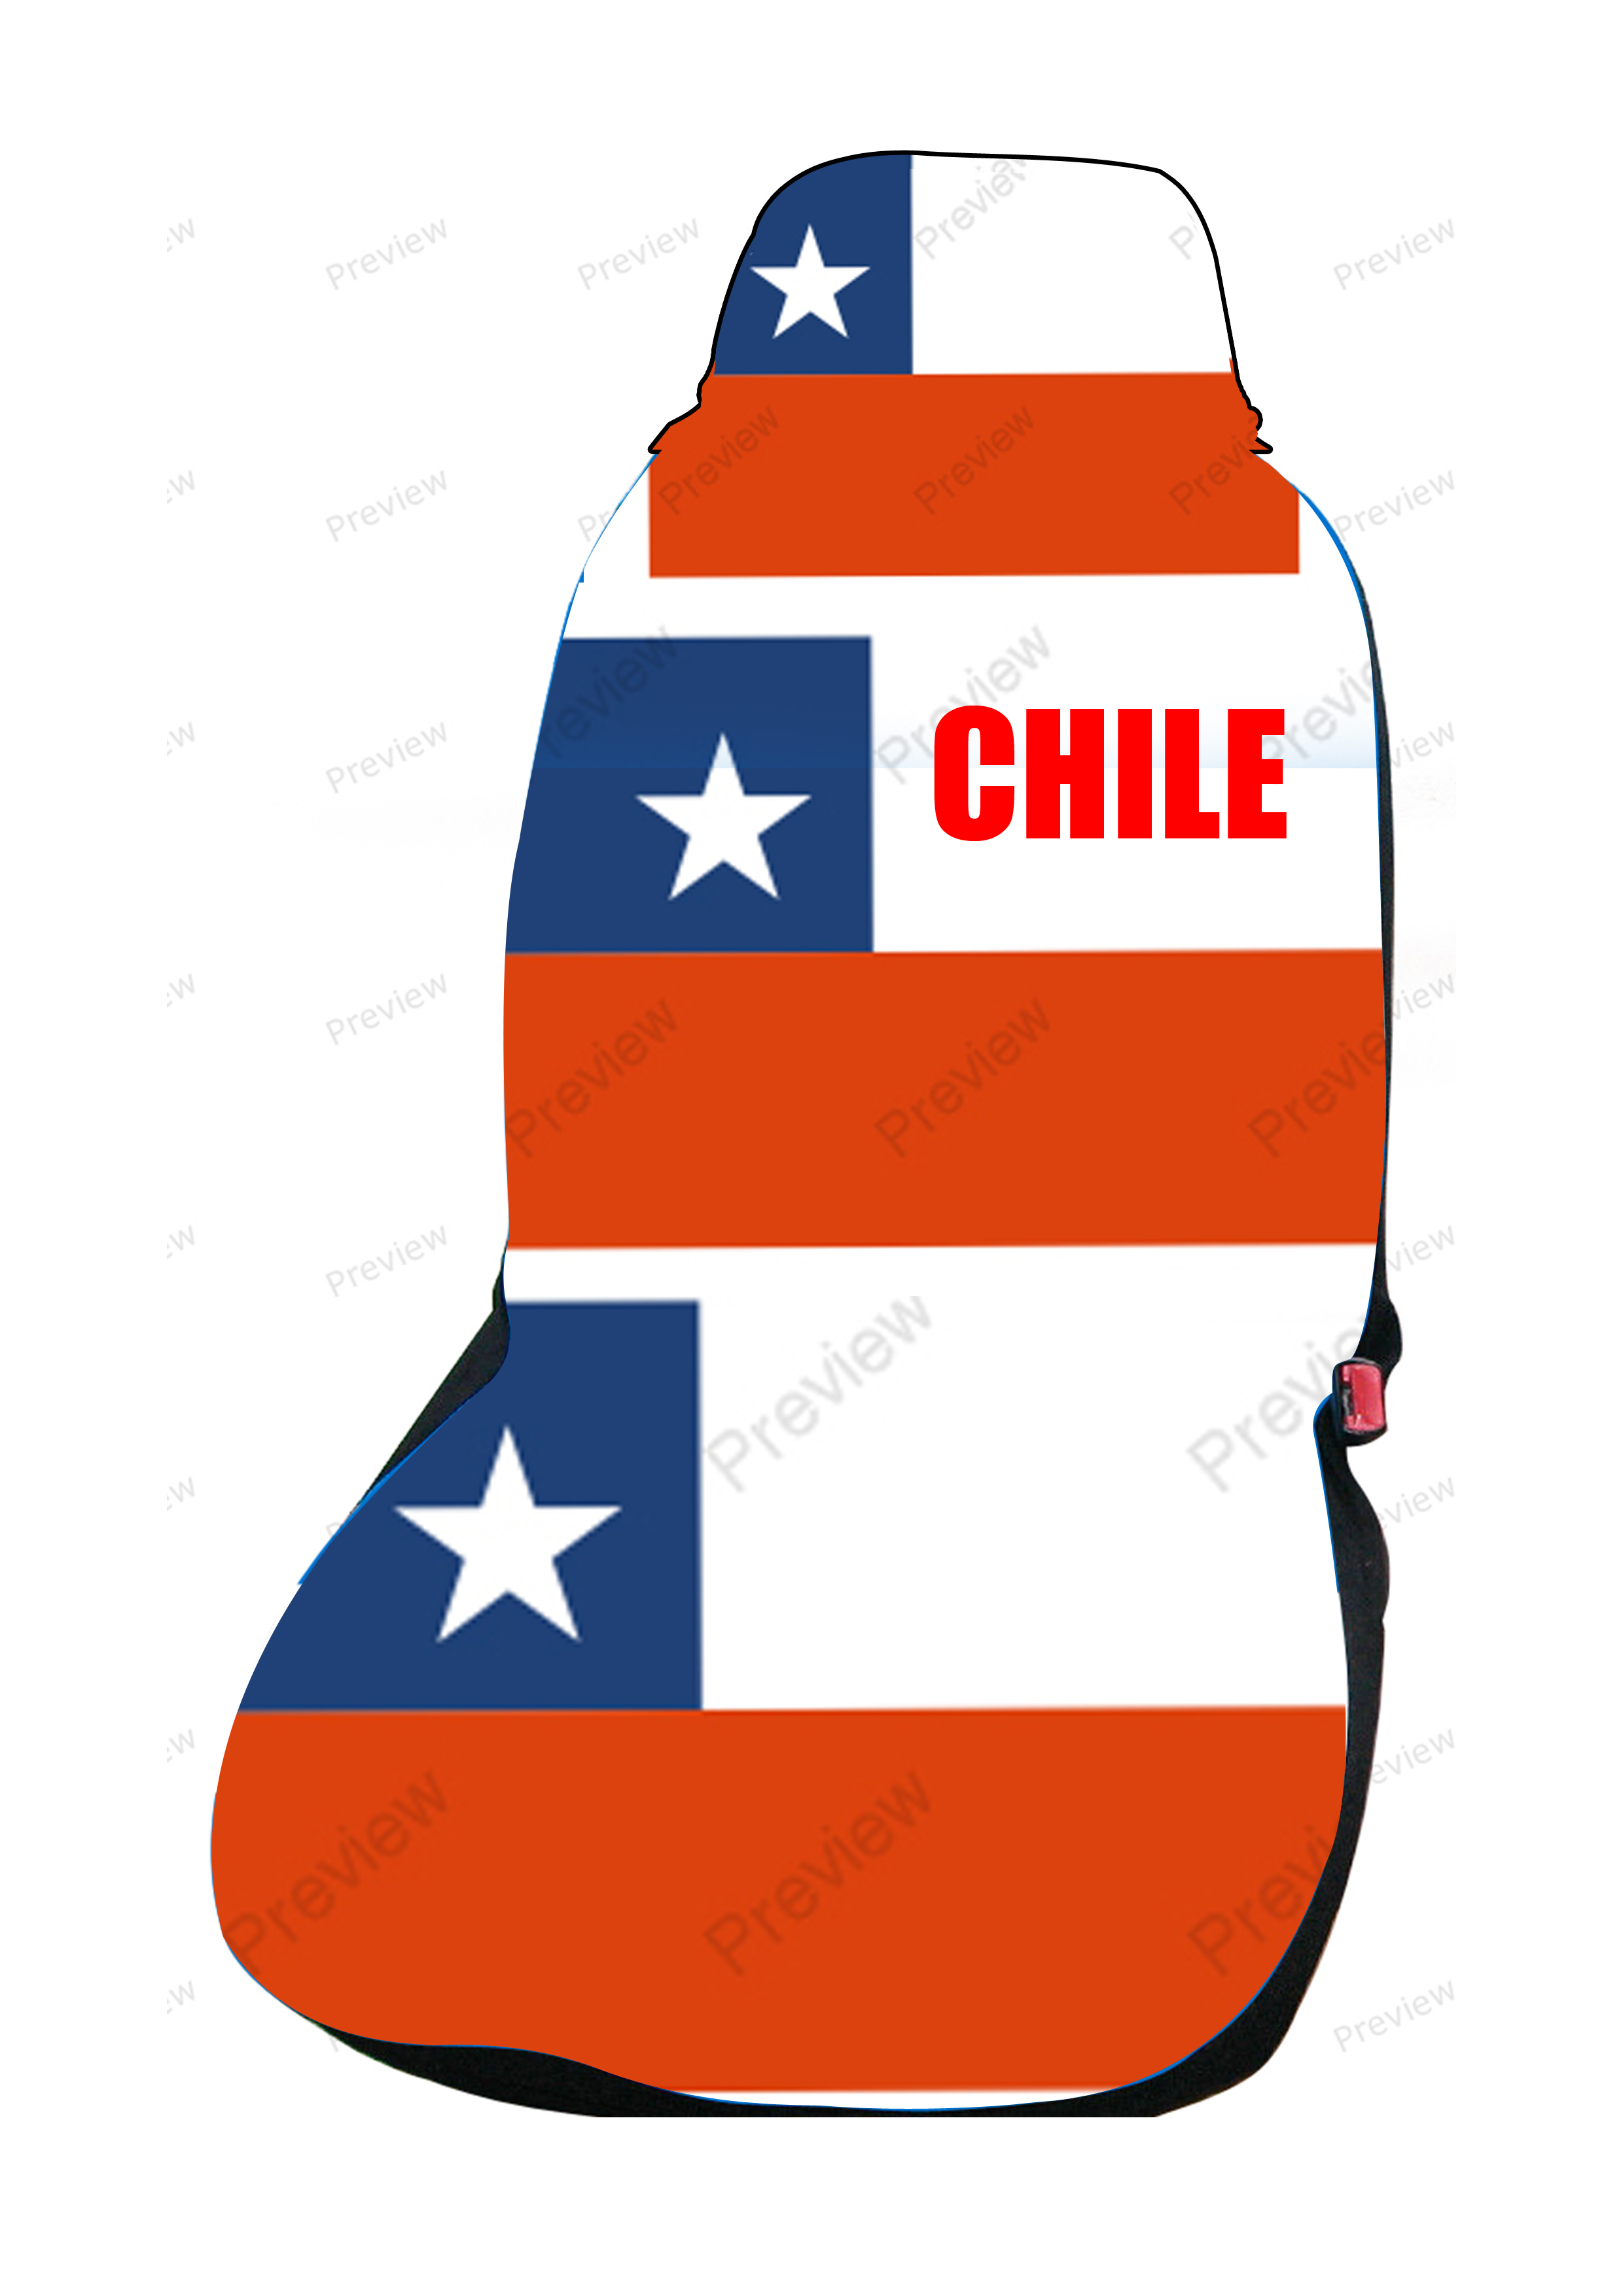 images/Chile Car Cover Seat Flag.jpg